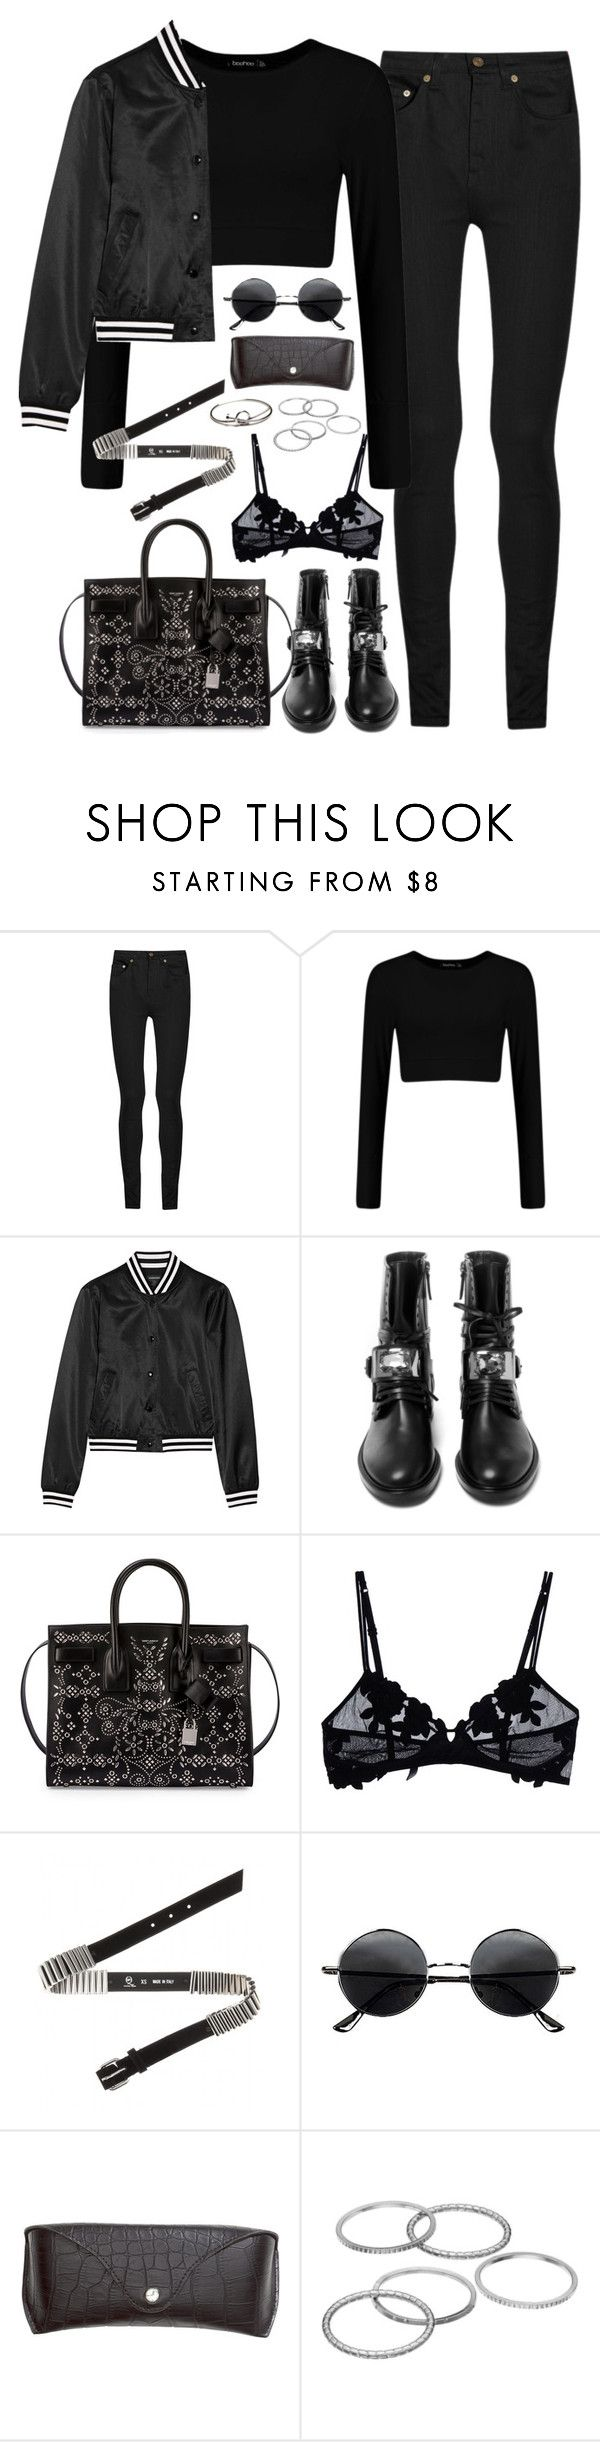 """Untitled#4518"" by fashionnfacts ❤ liked on Polyvore featuring Yves Saint Laurent, R13, Casadei, La Perla, McQ by Alexander McQueen, Retrò, H&M and Apt. 9"